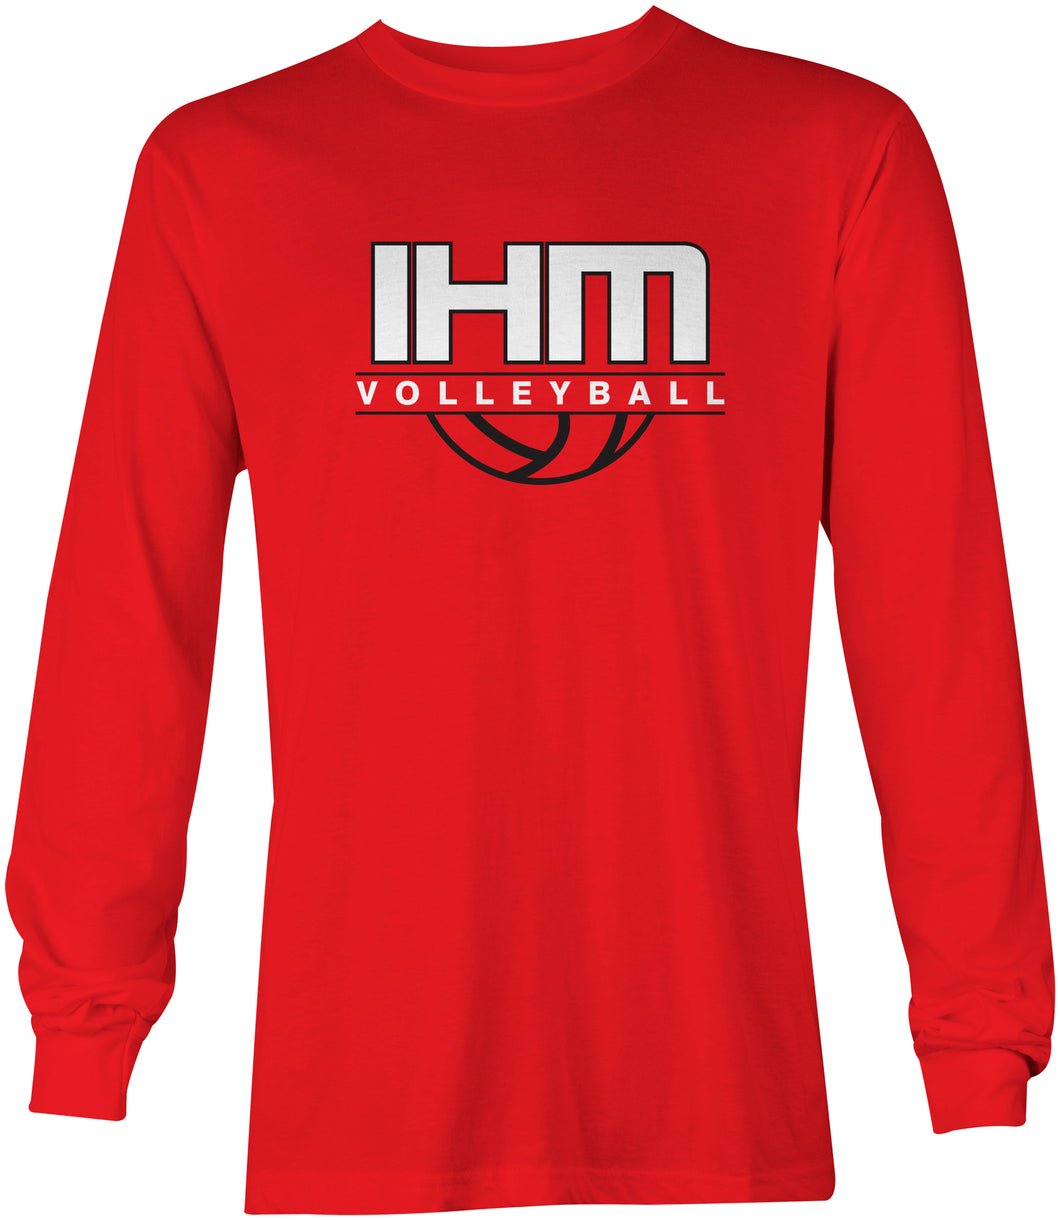 Red Volleyball Long Sleeve T-Shirt